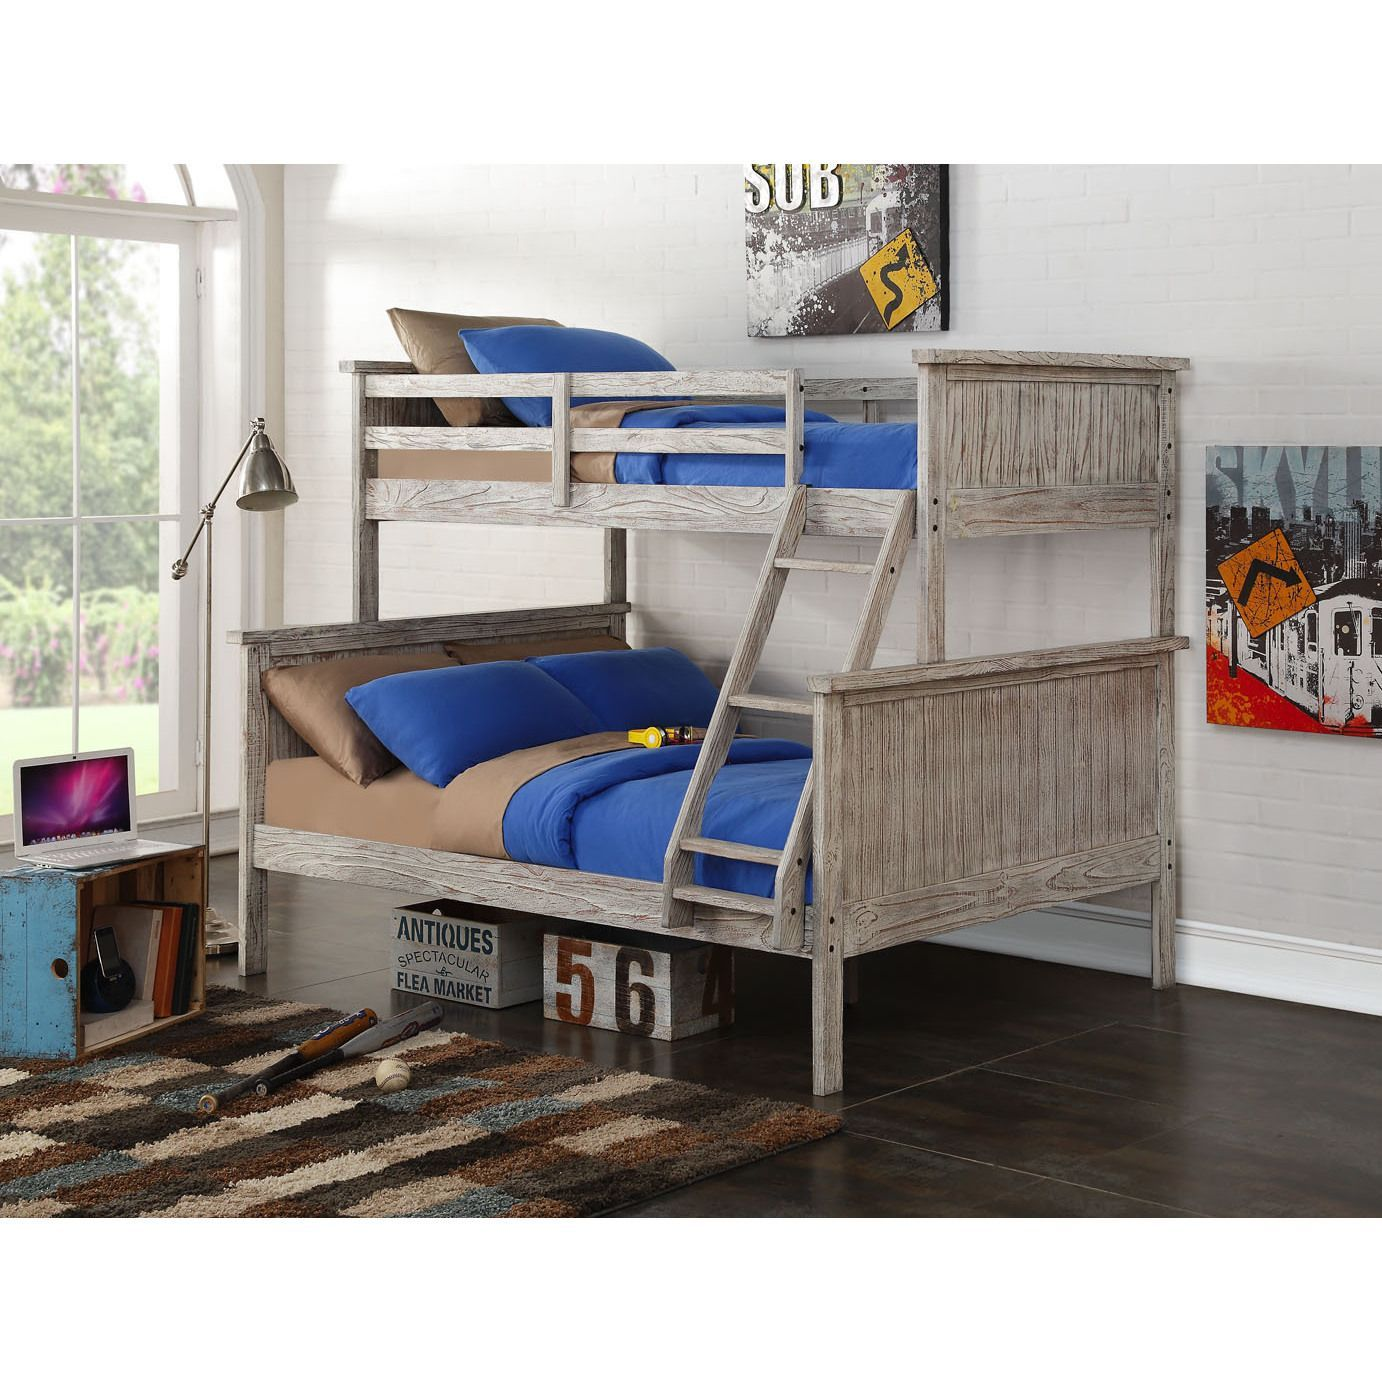 Bunk Beds Highlight Childhood Like Nothing Else This Set Of Bunk